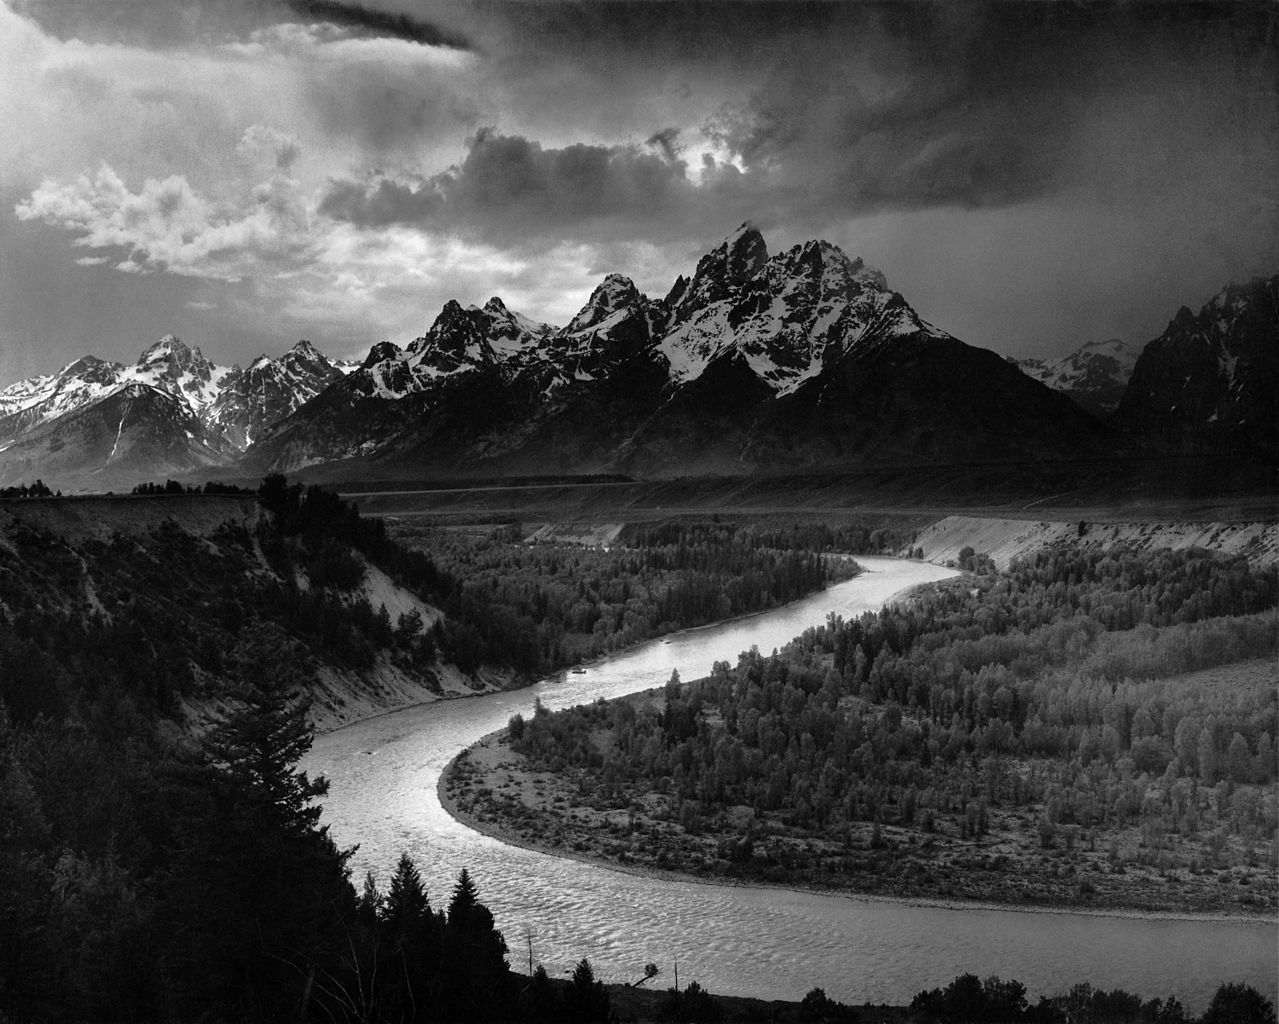 1279px-Adams_The_Tetons_and_the_Snake_River.jpg image